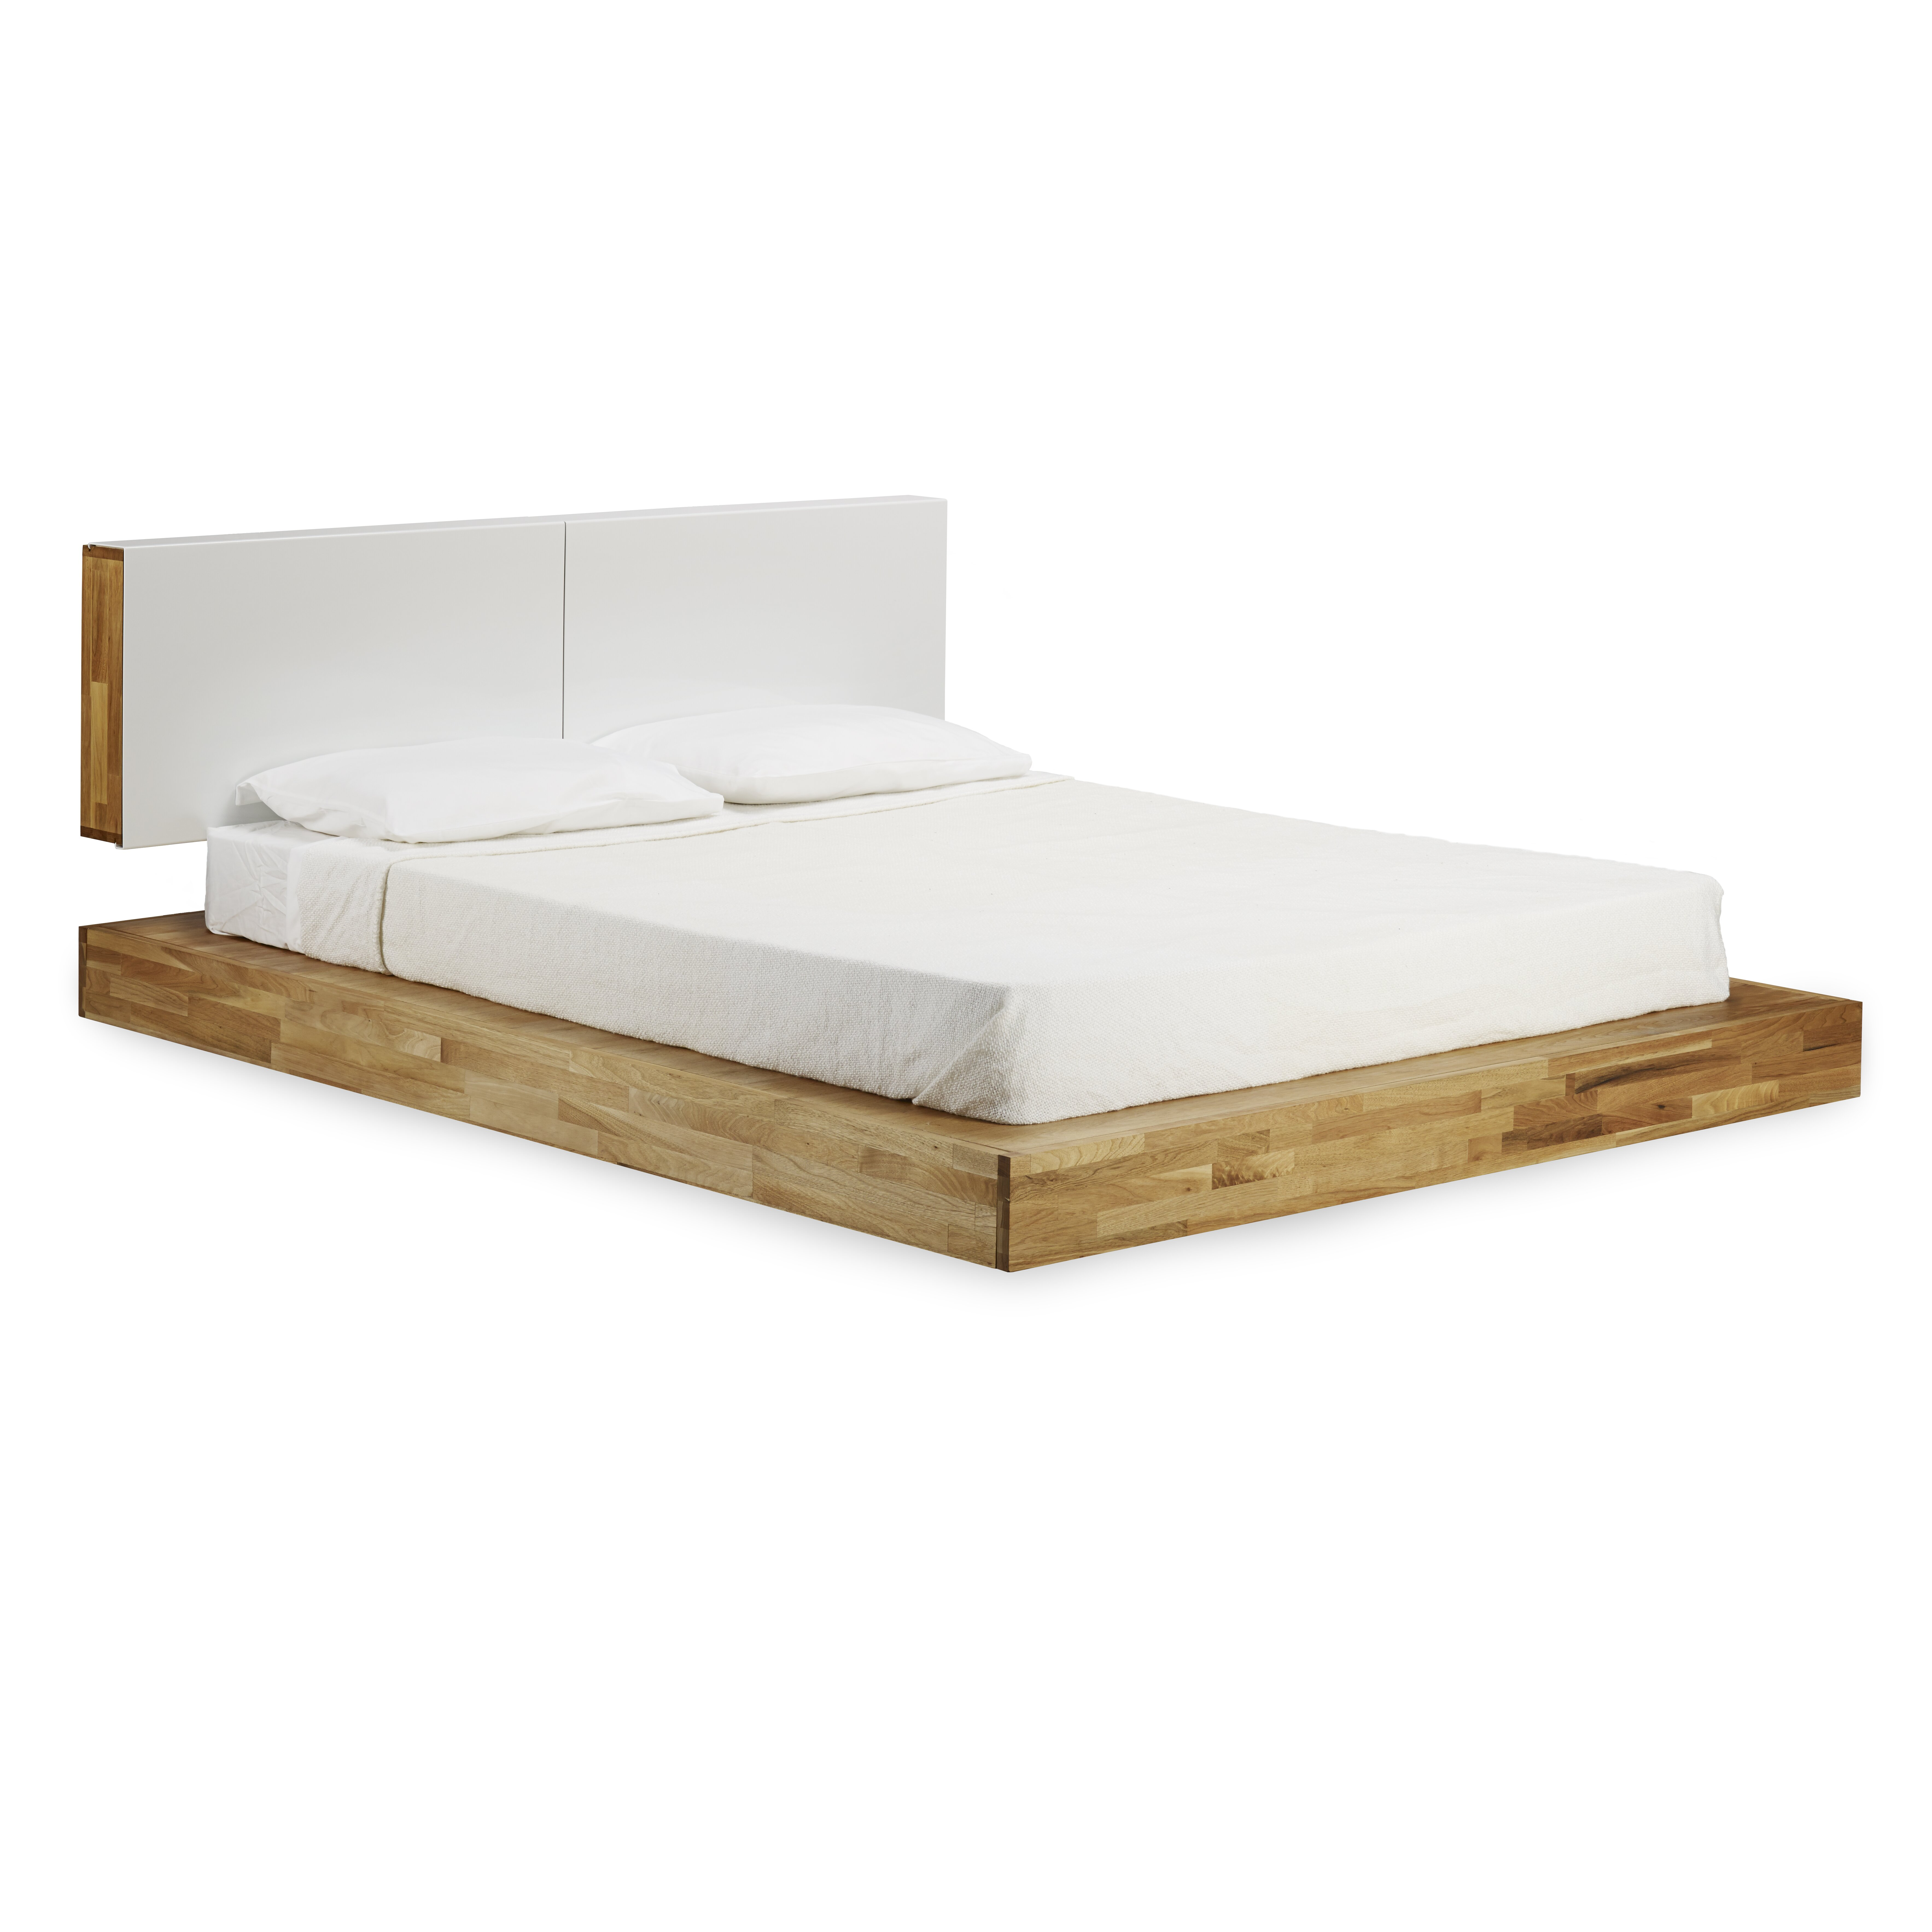 Mash studios lax series platform bed reviews wayfair - Bed frames without headboards ...